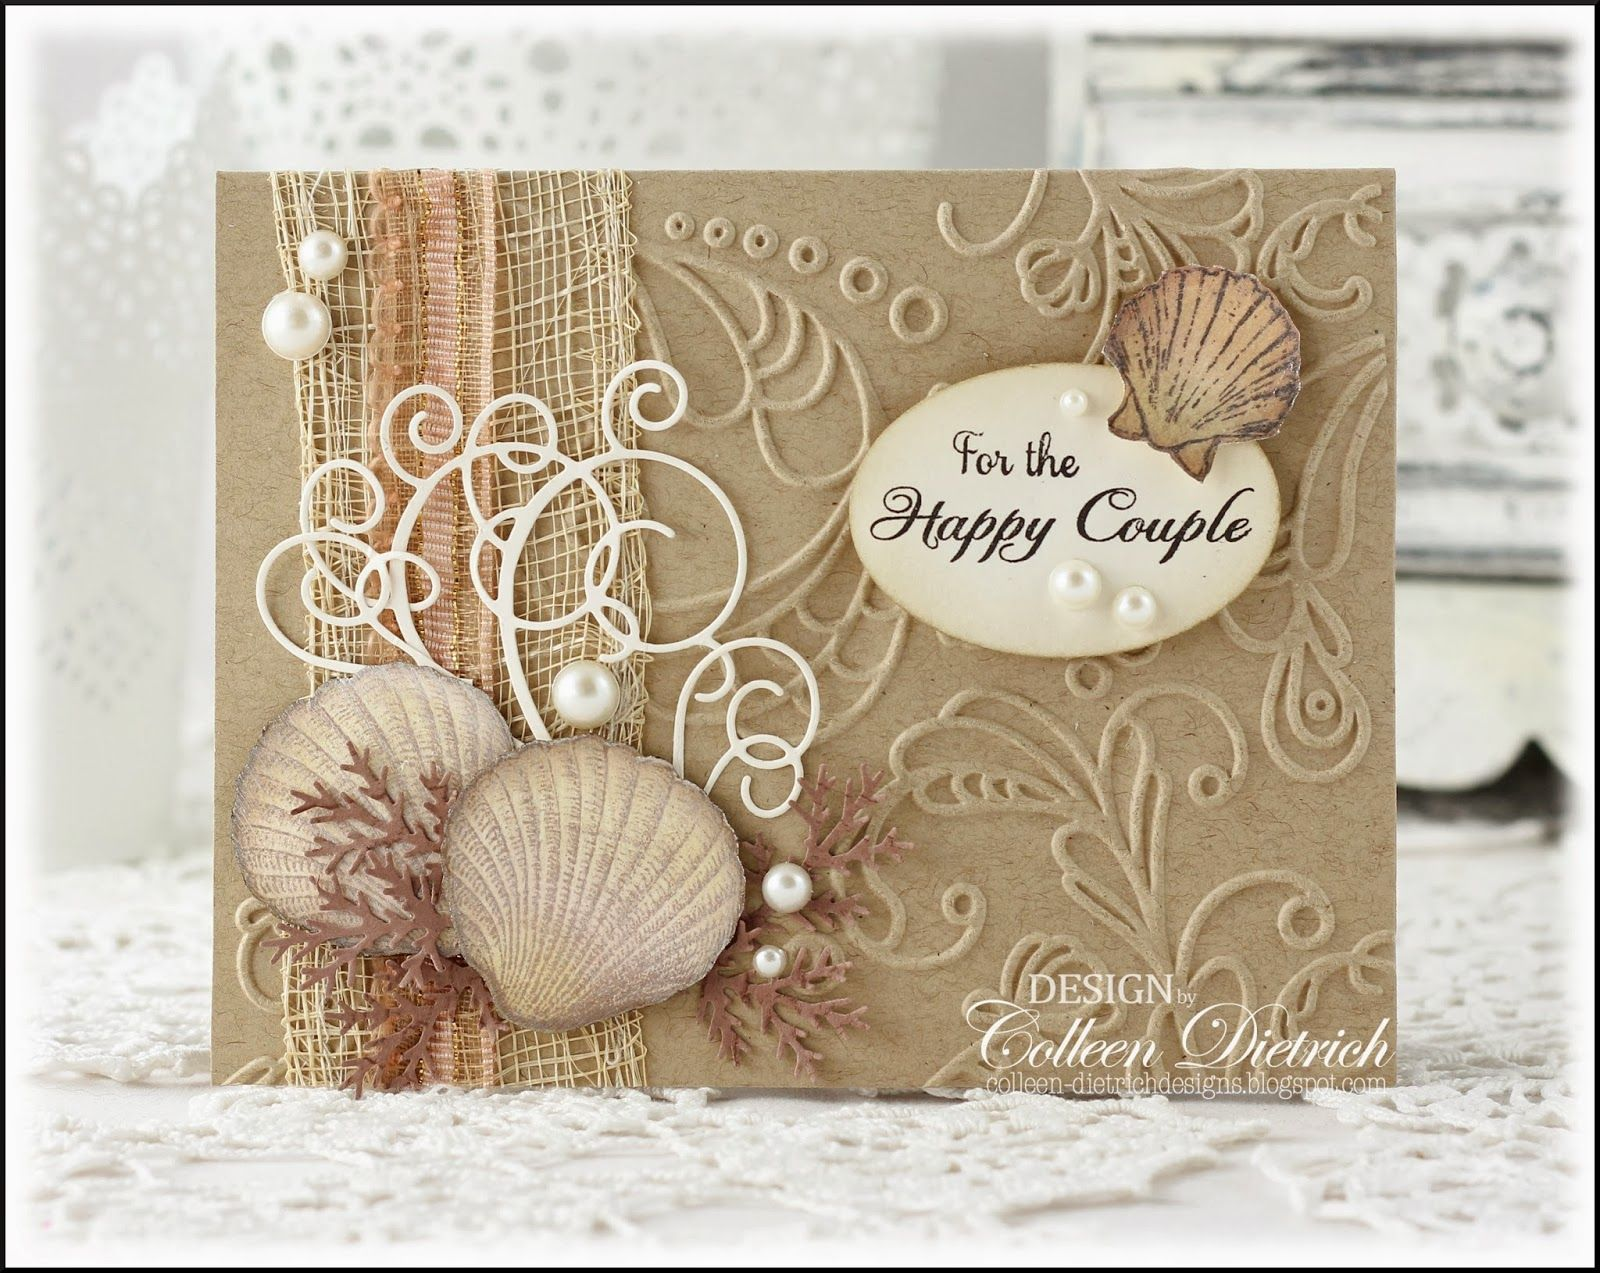 The Bridal Collection Part 3 Wedding Cards Handmade Beach